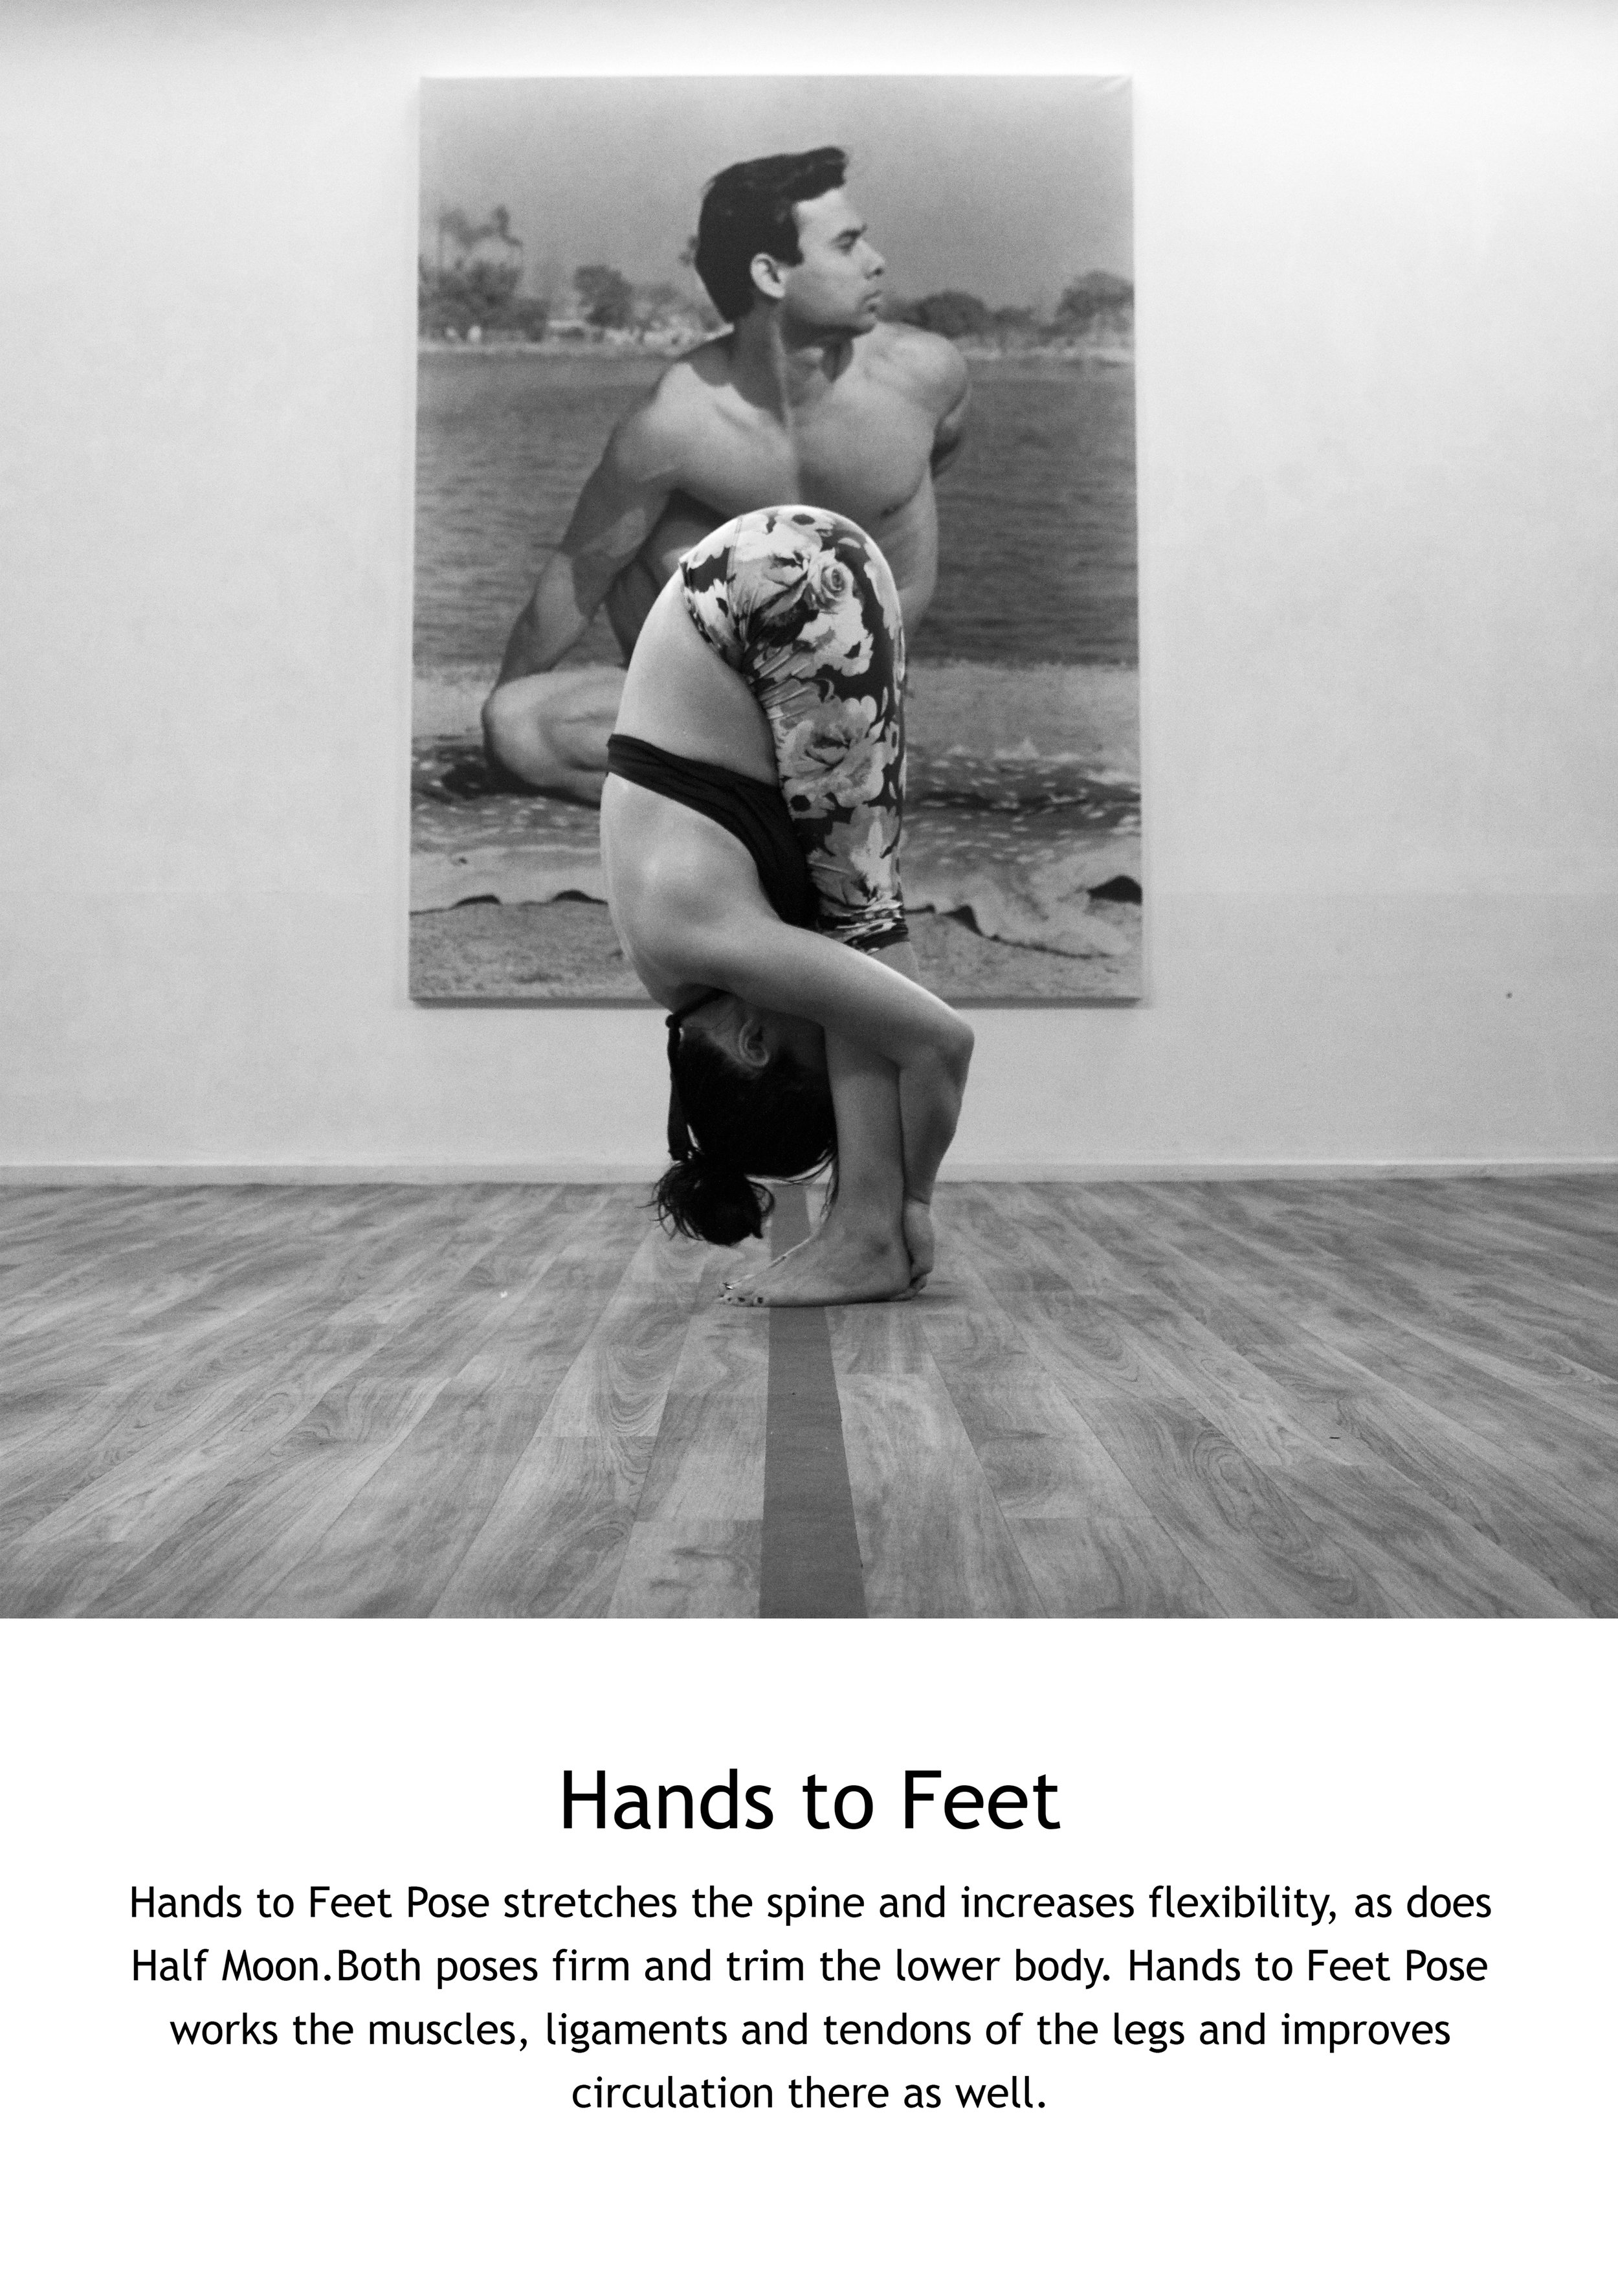 Hands to Feet